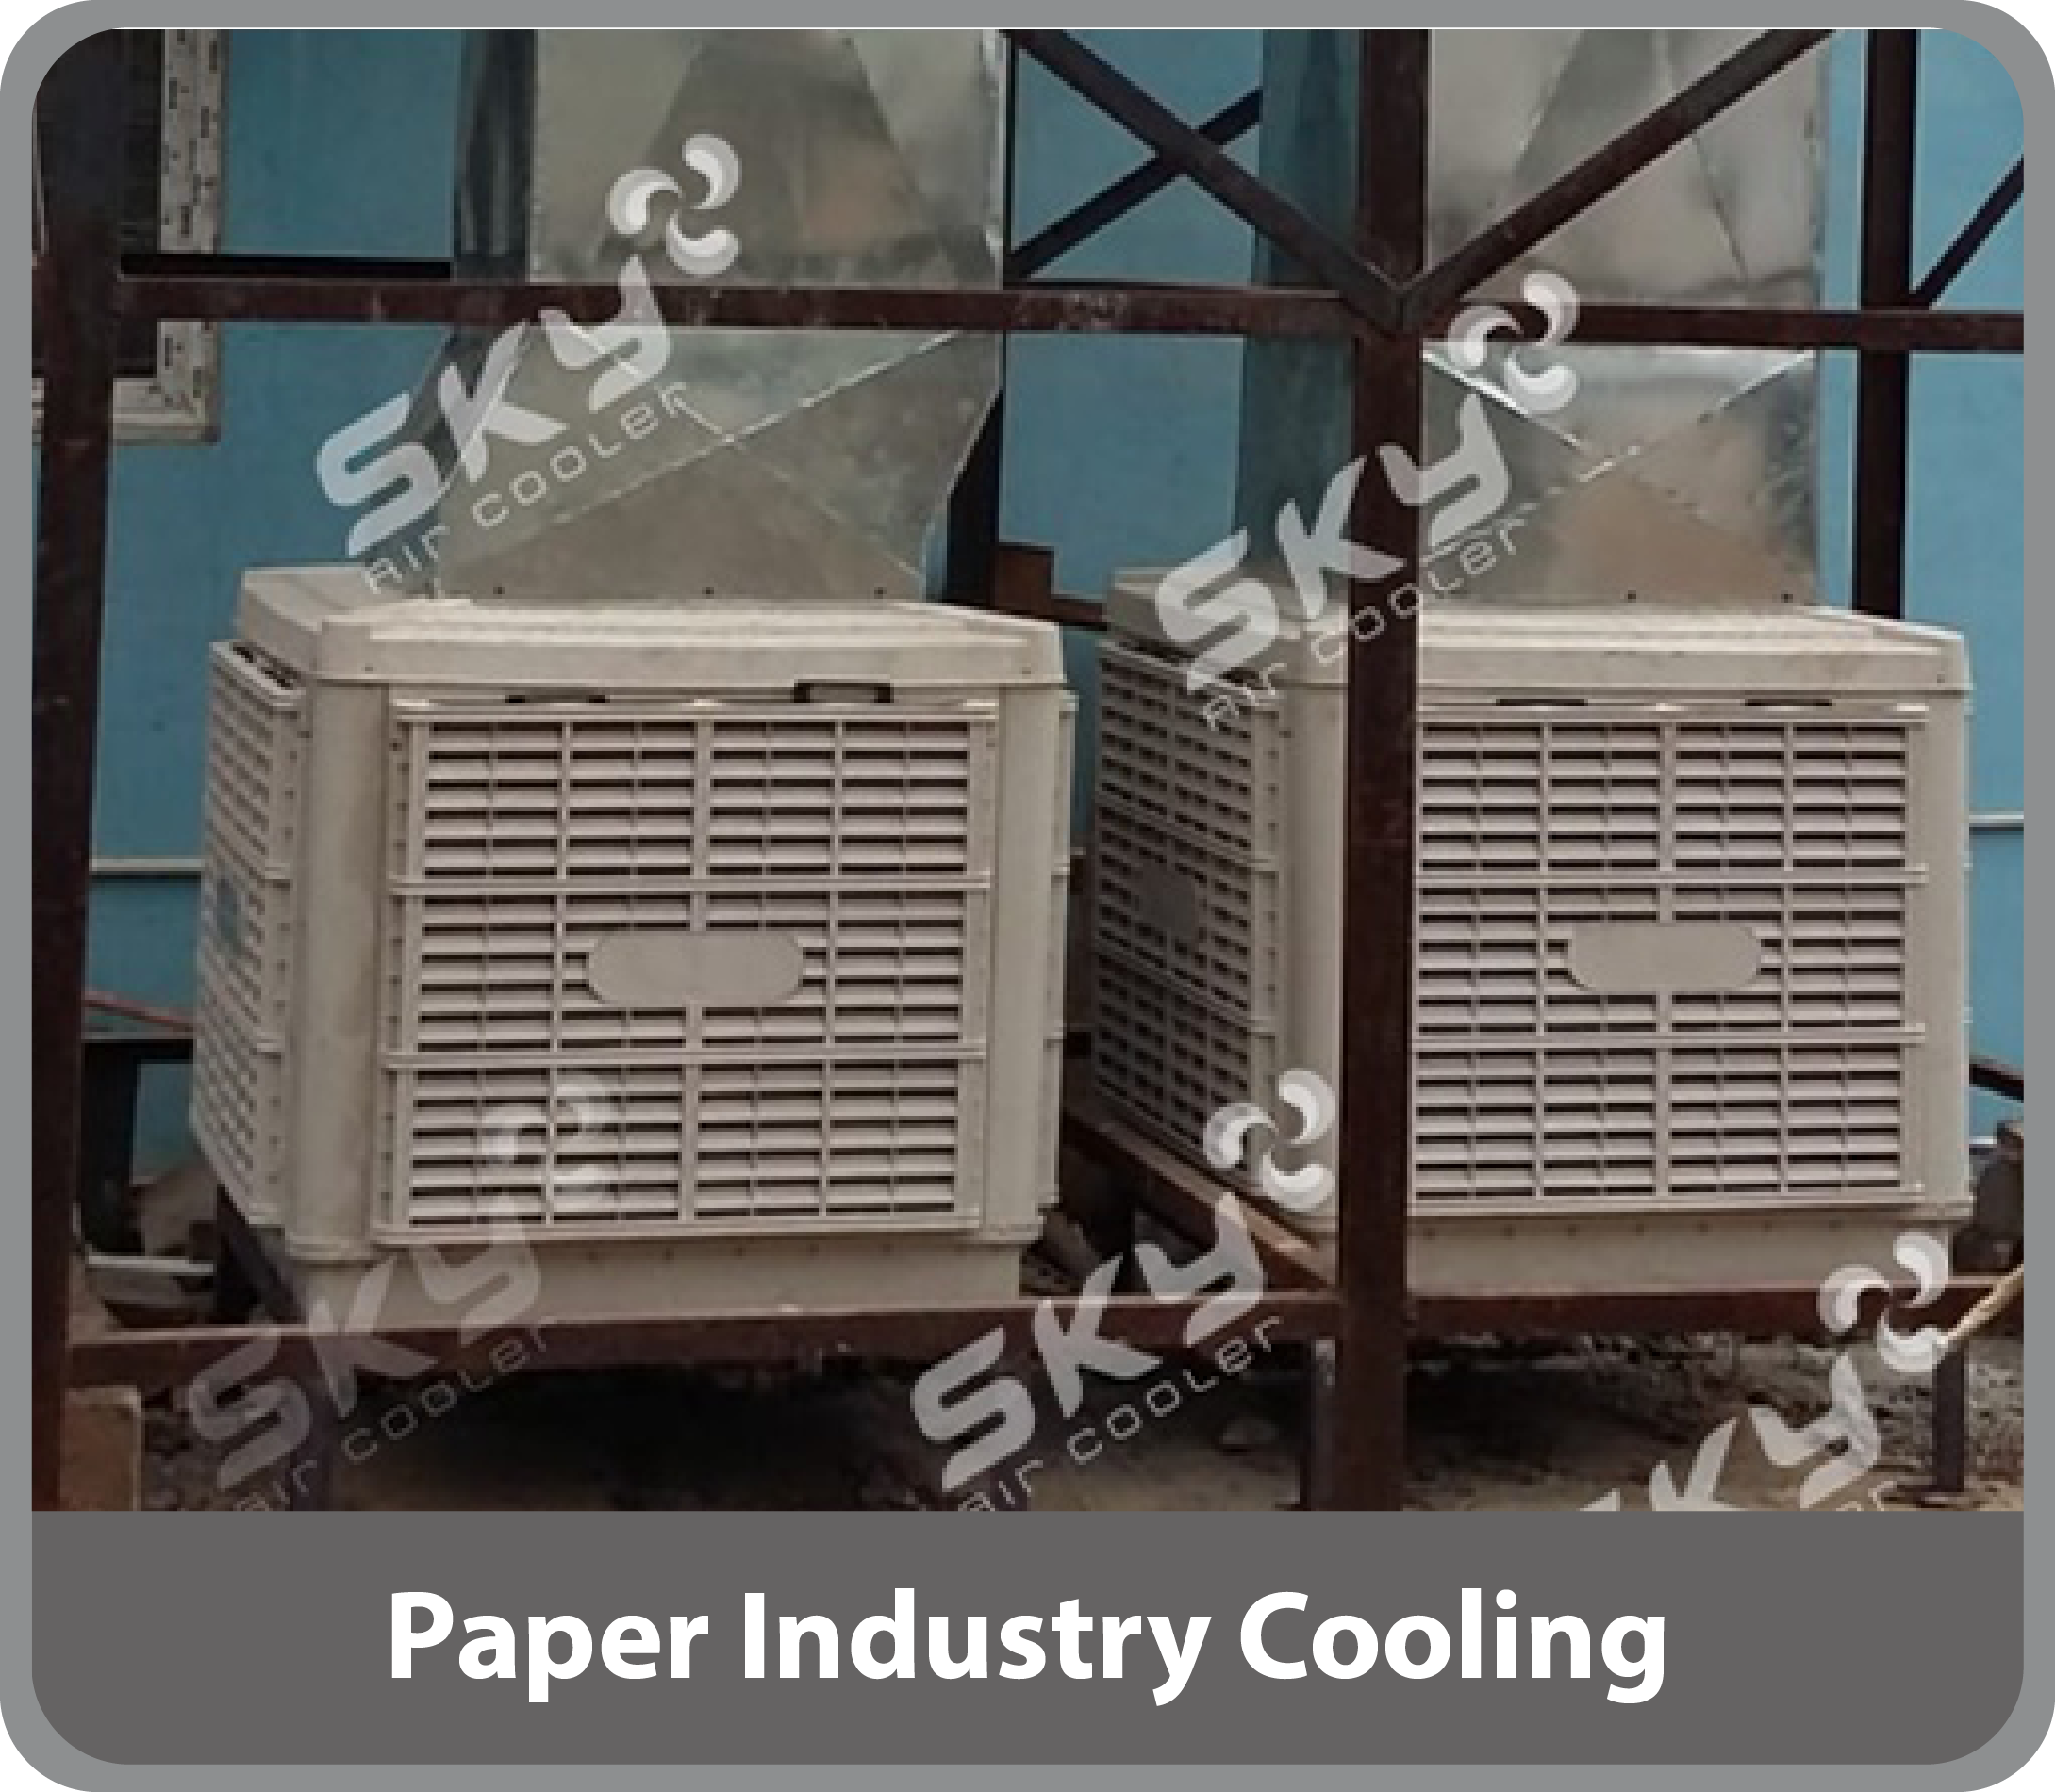 Paper Industry Cooling